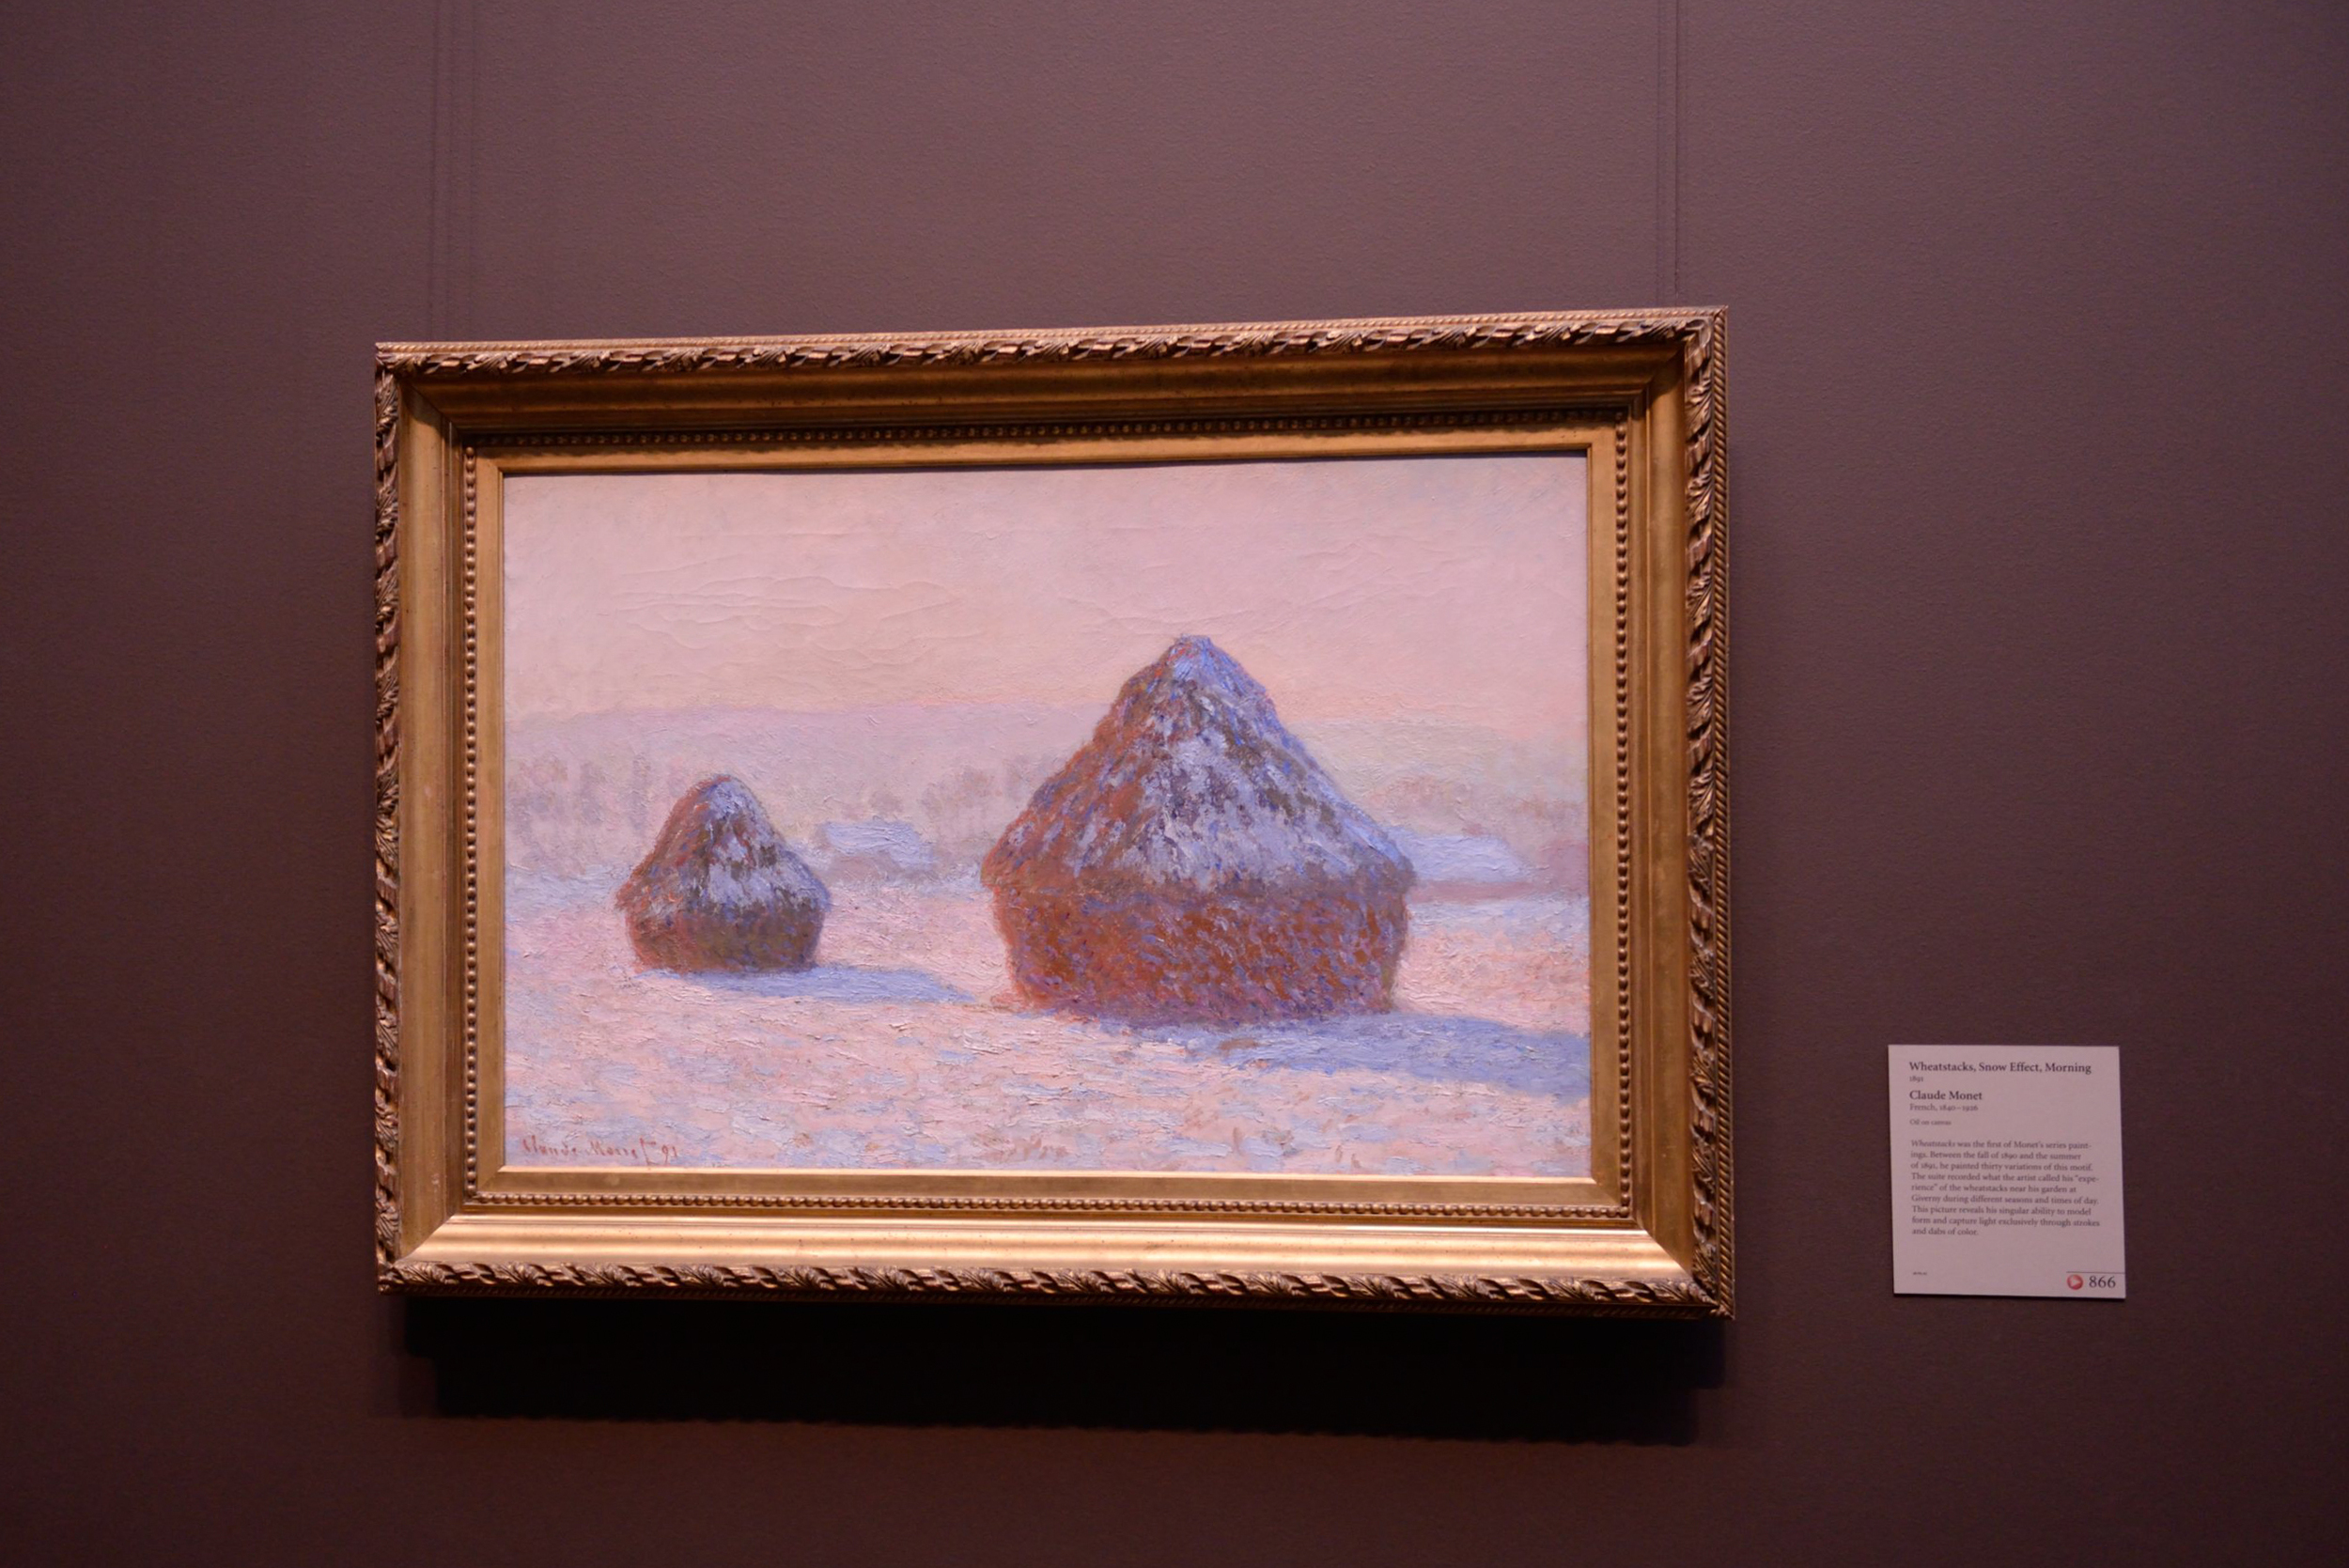 Haystacks in Winter  |  Claude Monet